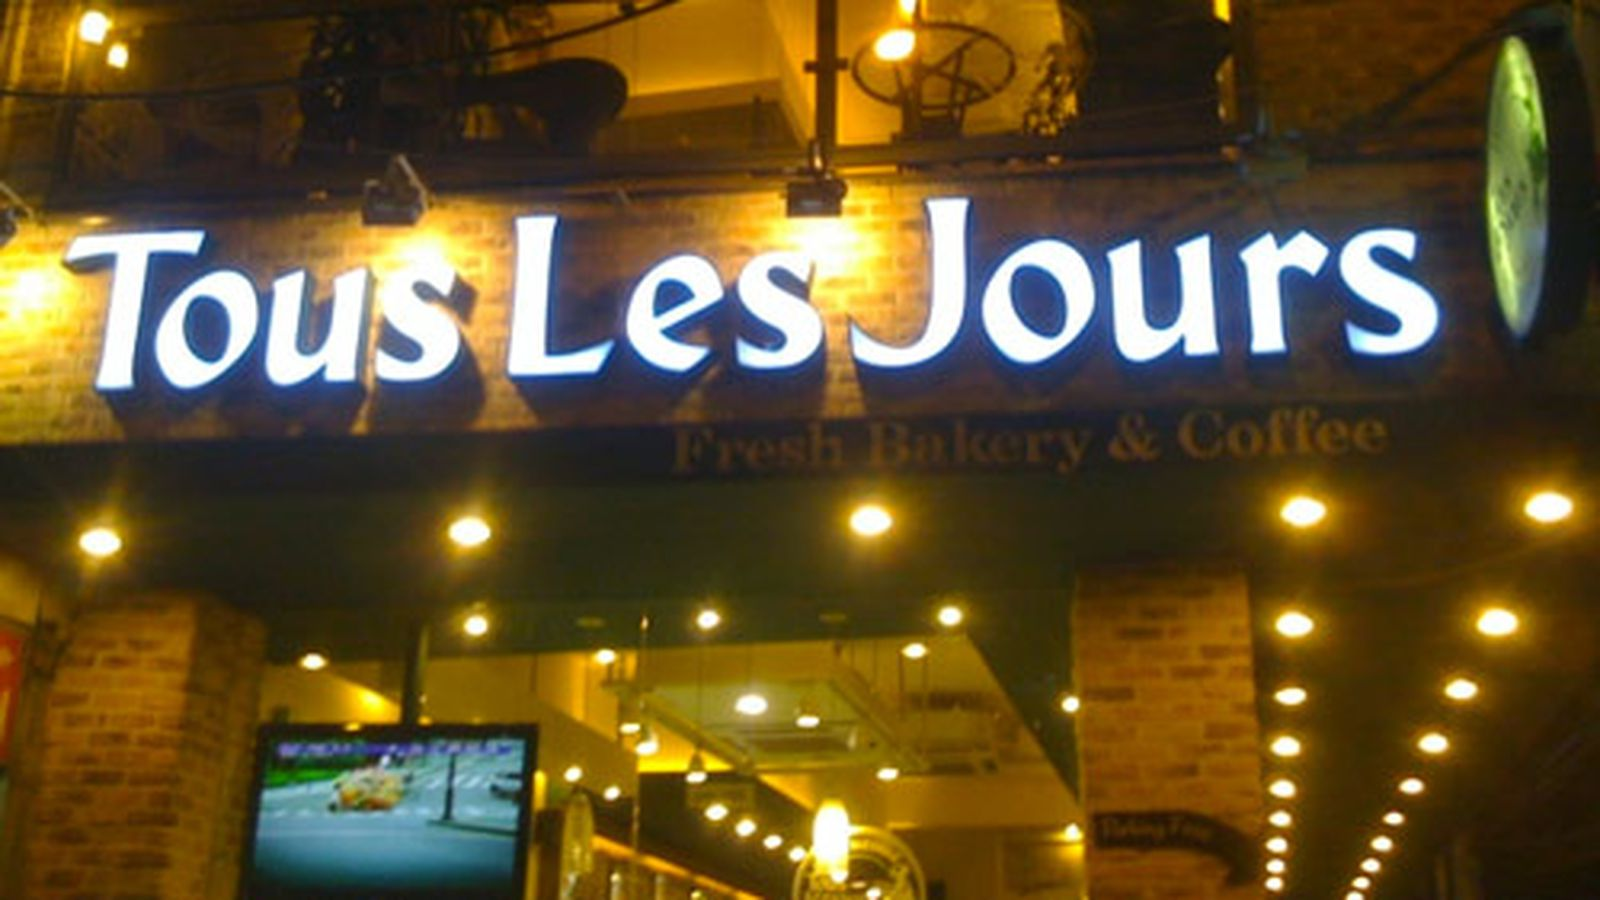 Tous Les Jours Headed for Former Kelly's in Allston